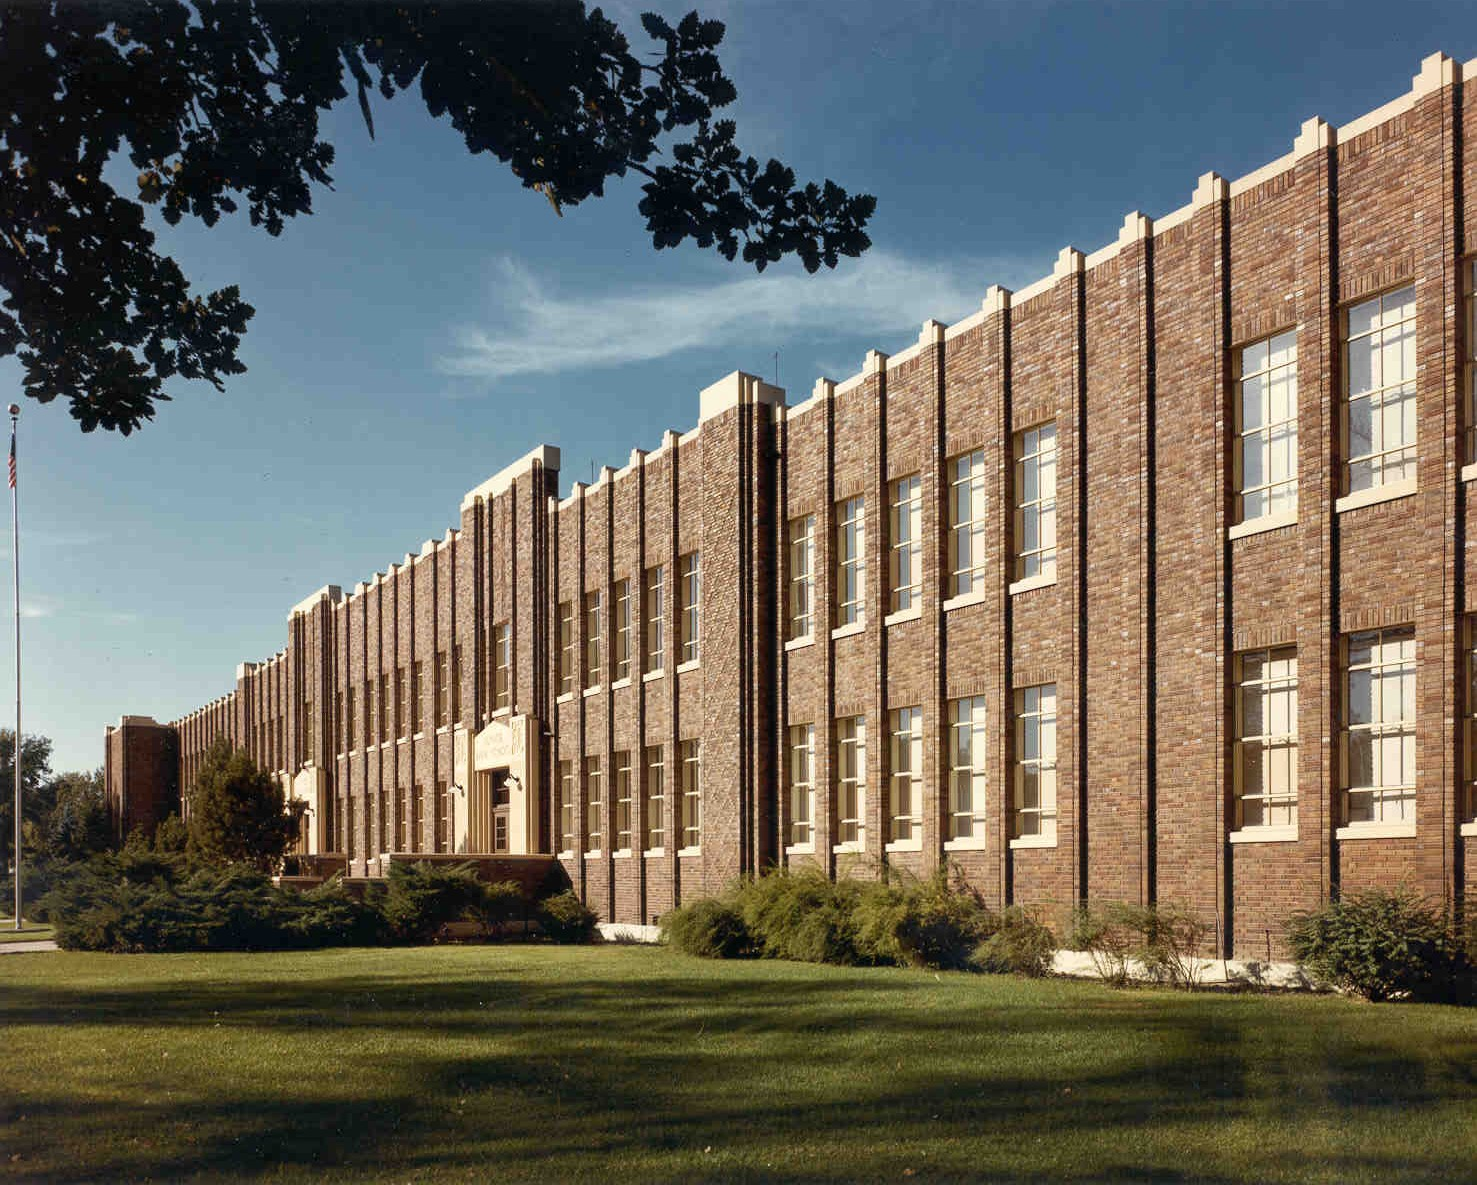 North Junior High : 1936 -